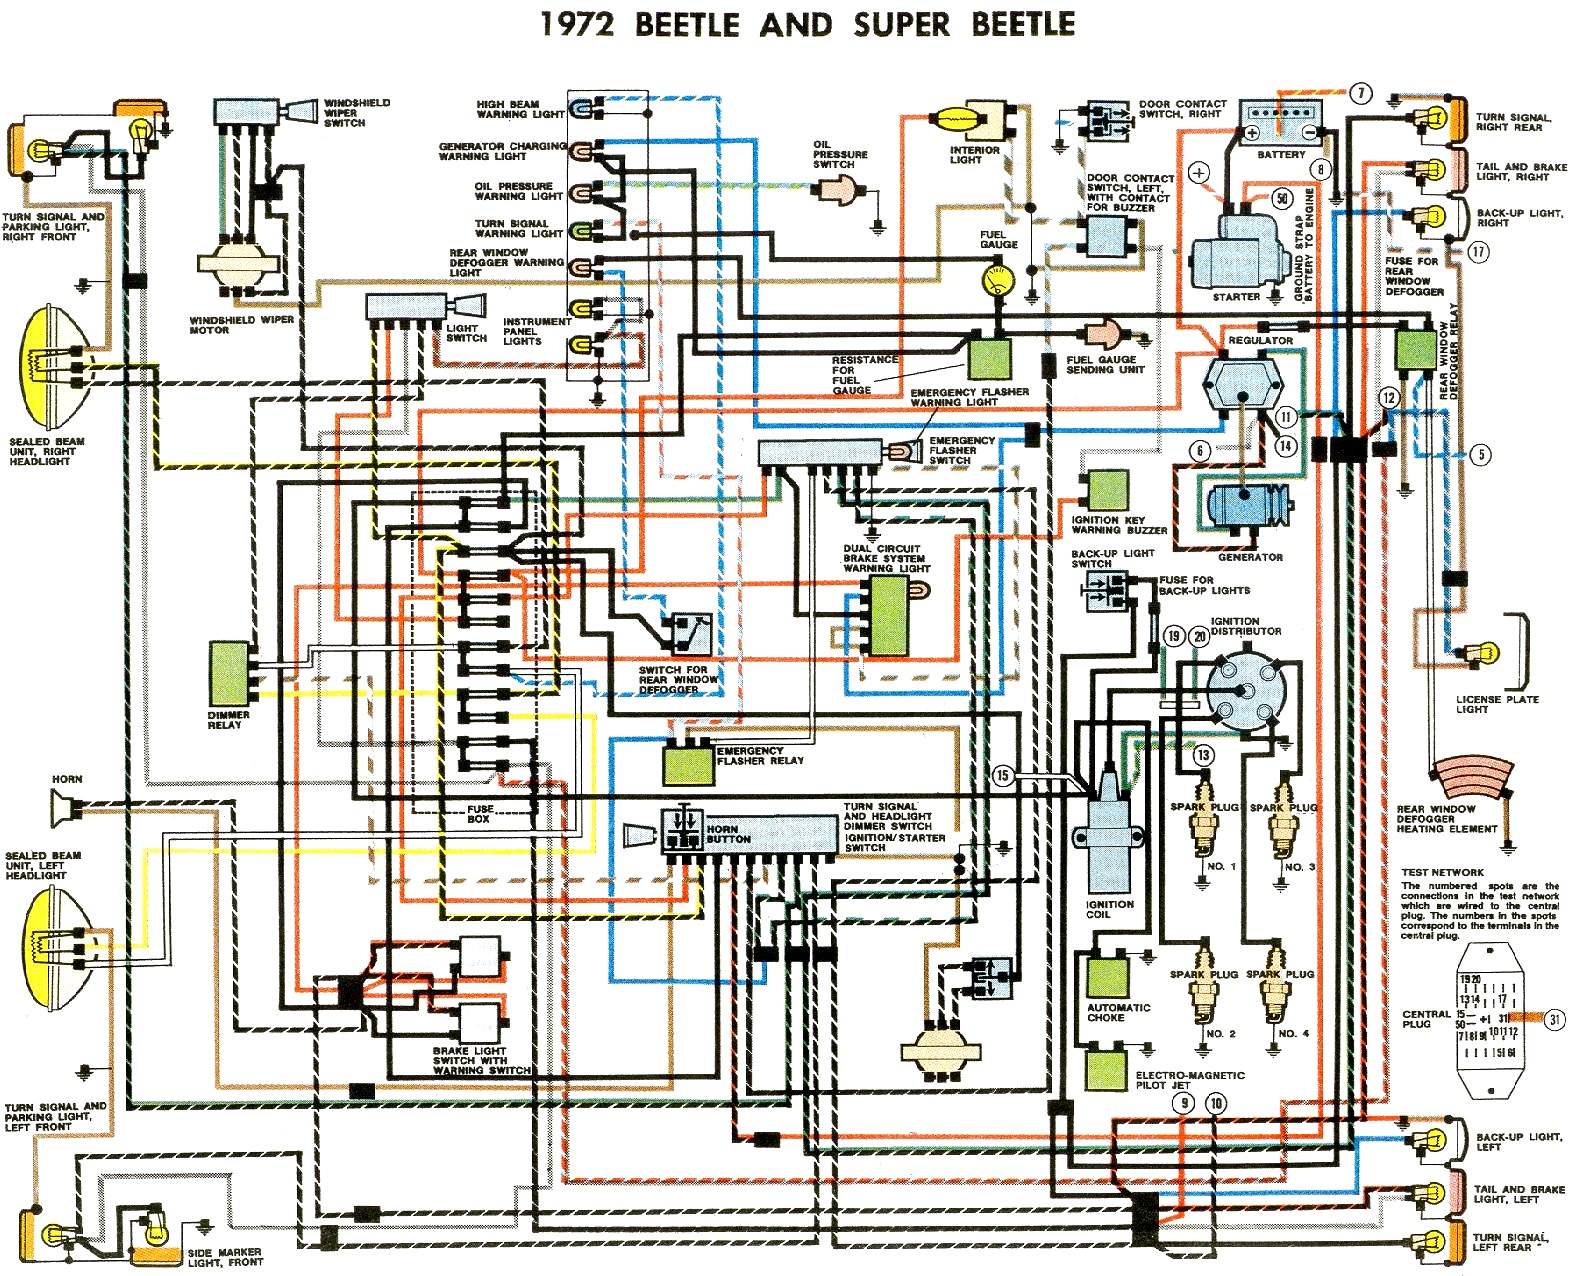 bug_72 72 vw beetle wiring diagram 2001 vw alternator wire diagram \u2022 free vw dune buggy wiring schematic at webbmarketing.co